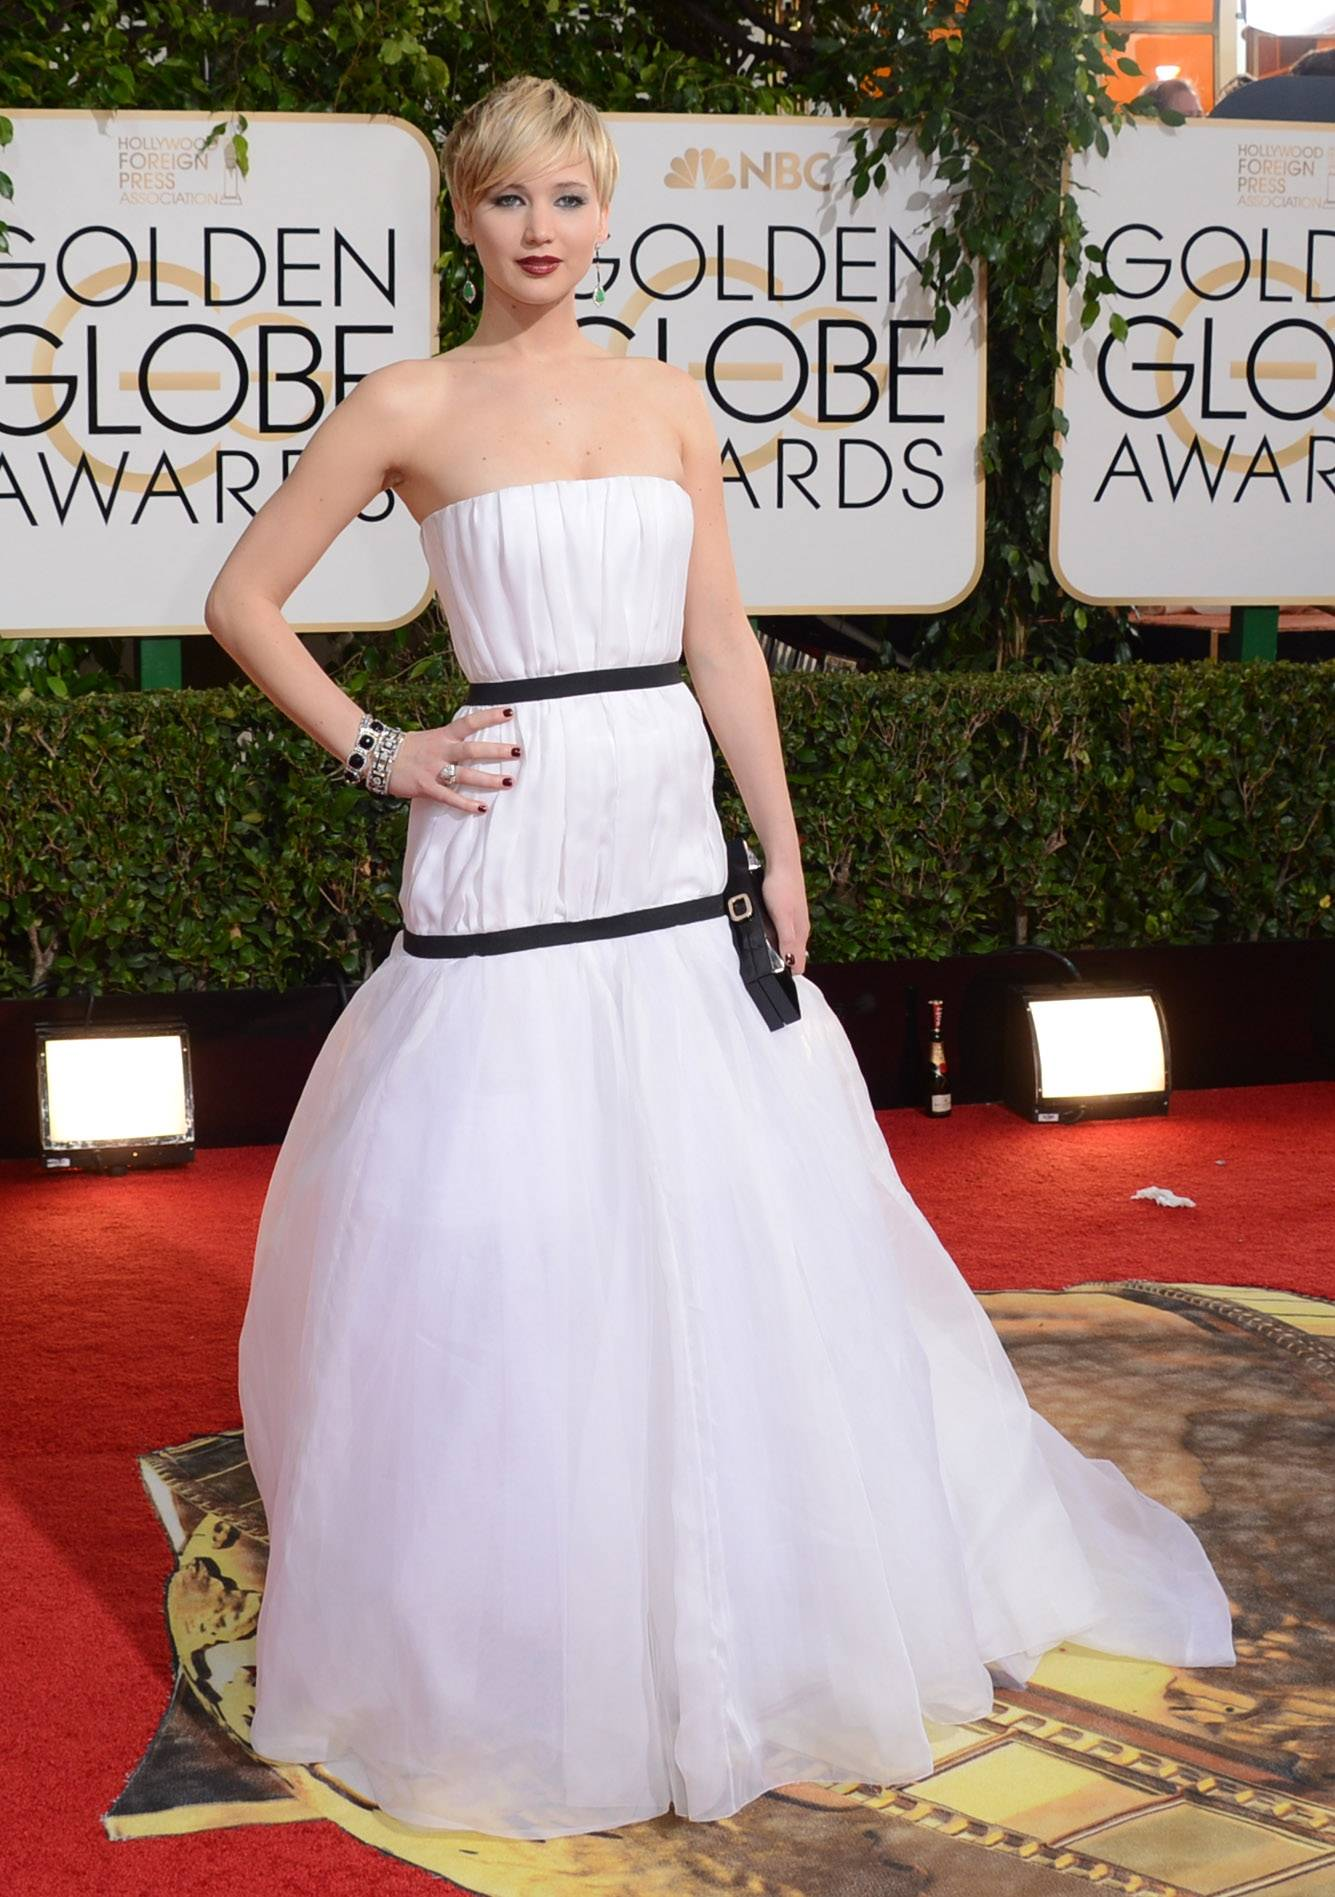 Jennifer Lawrence goes ethereal and edgy for her Golden Globes fashion.